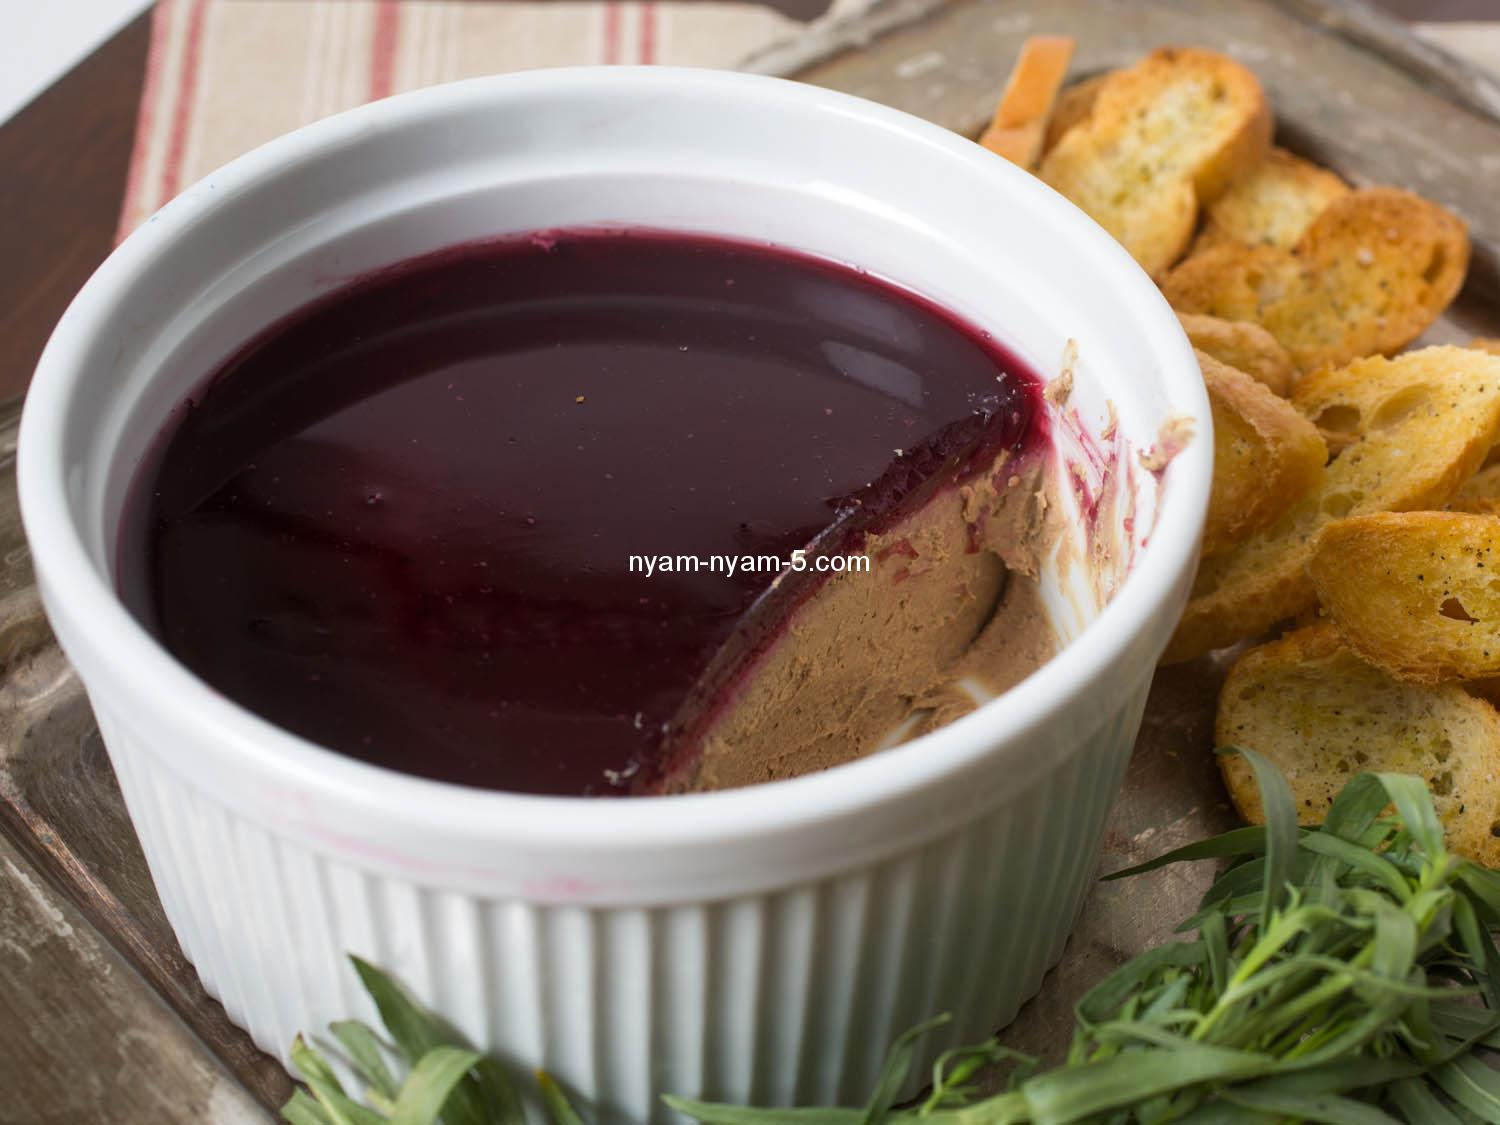 20141113-chicken-liver-pate-cranberry-gelee-bourbon-vicky-wasik-6